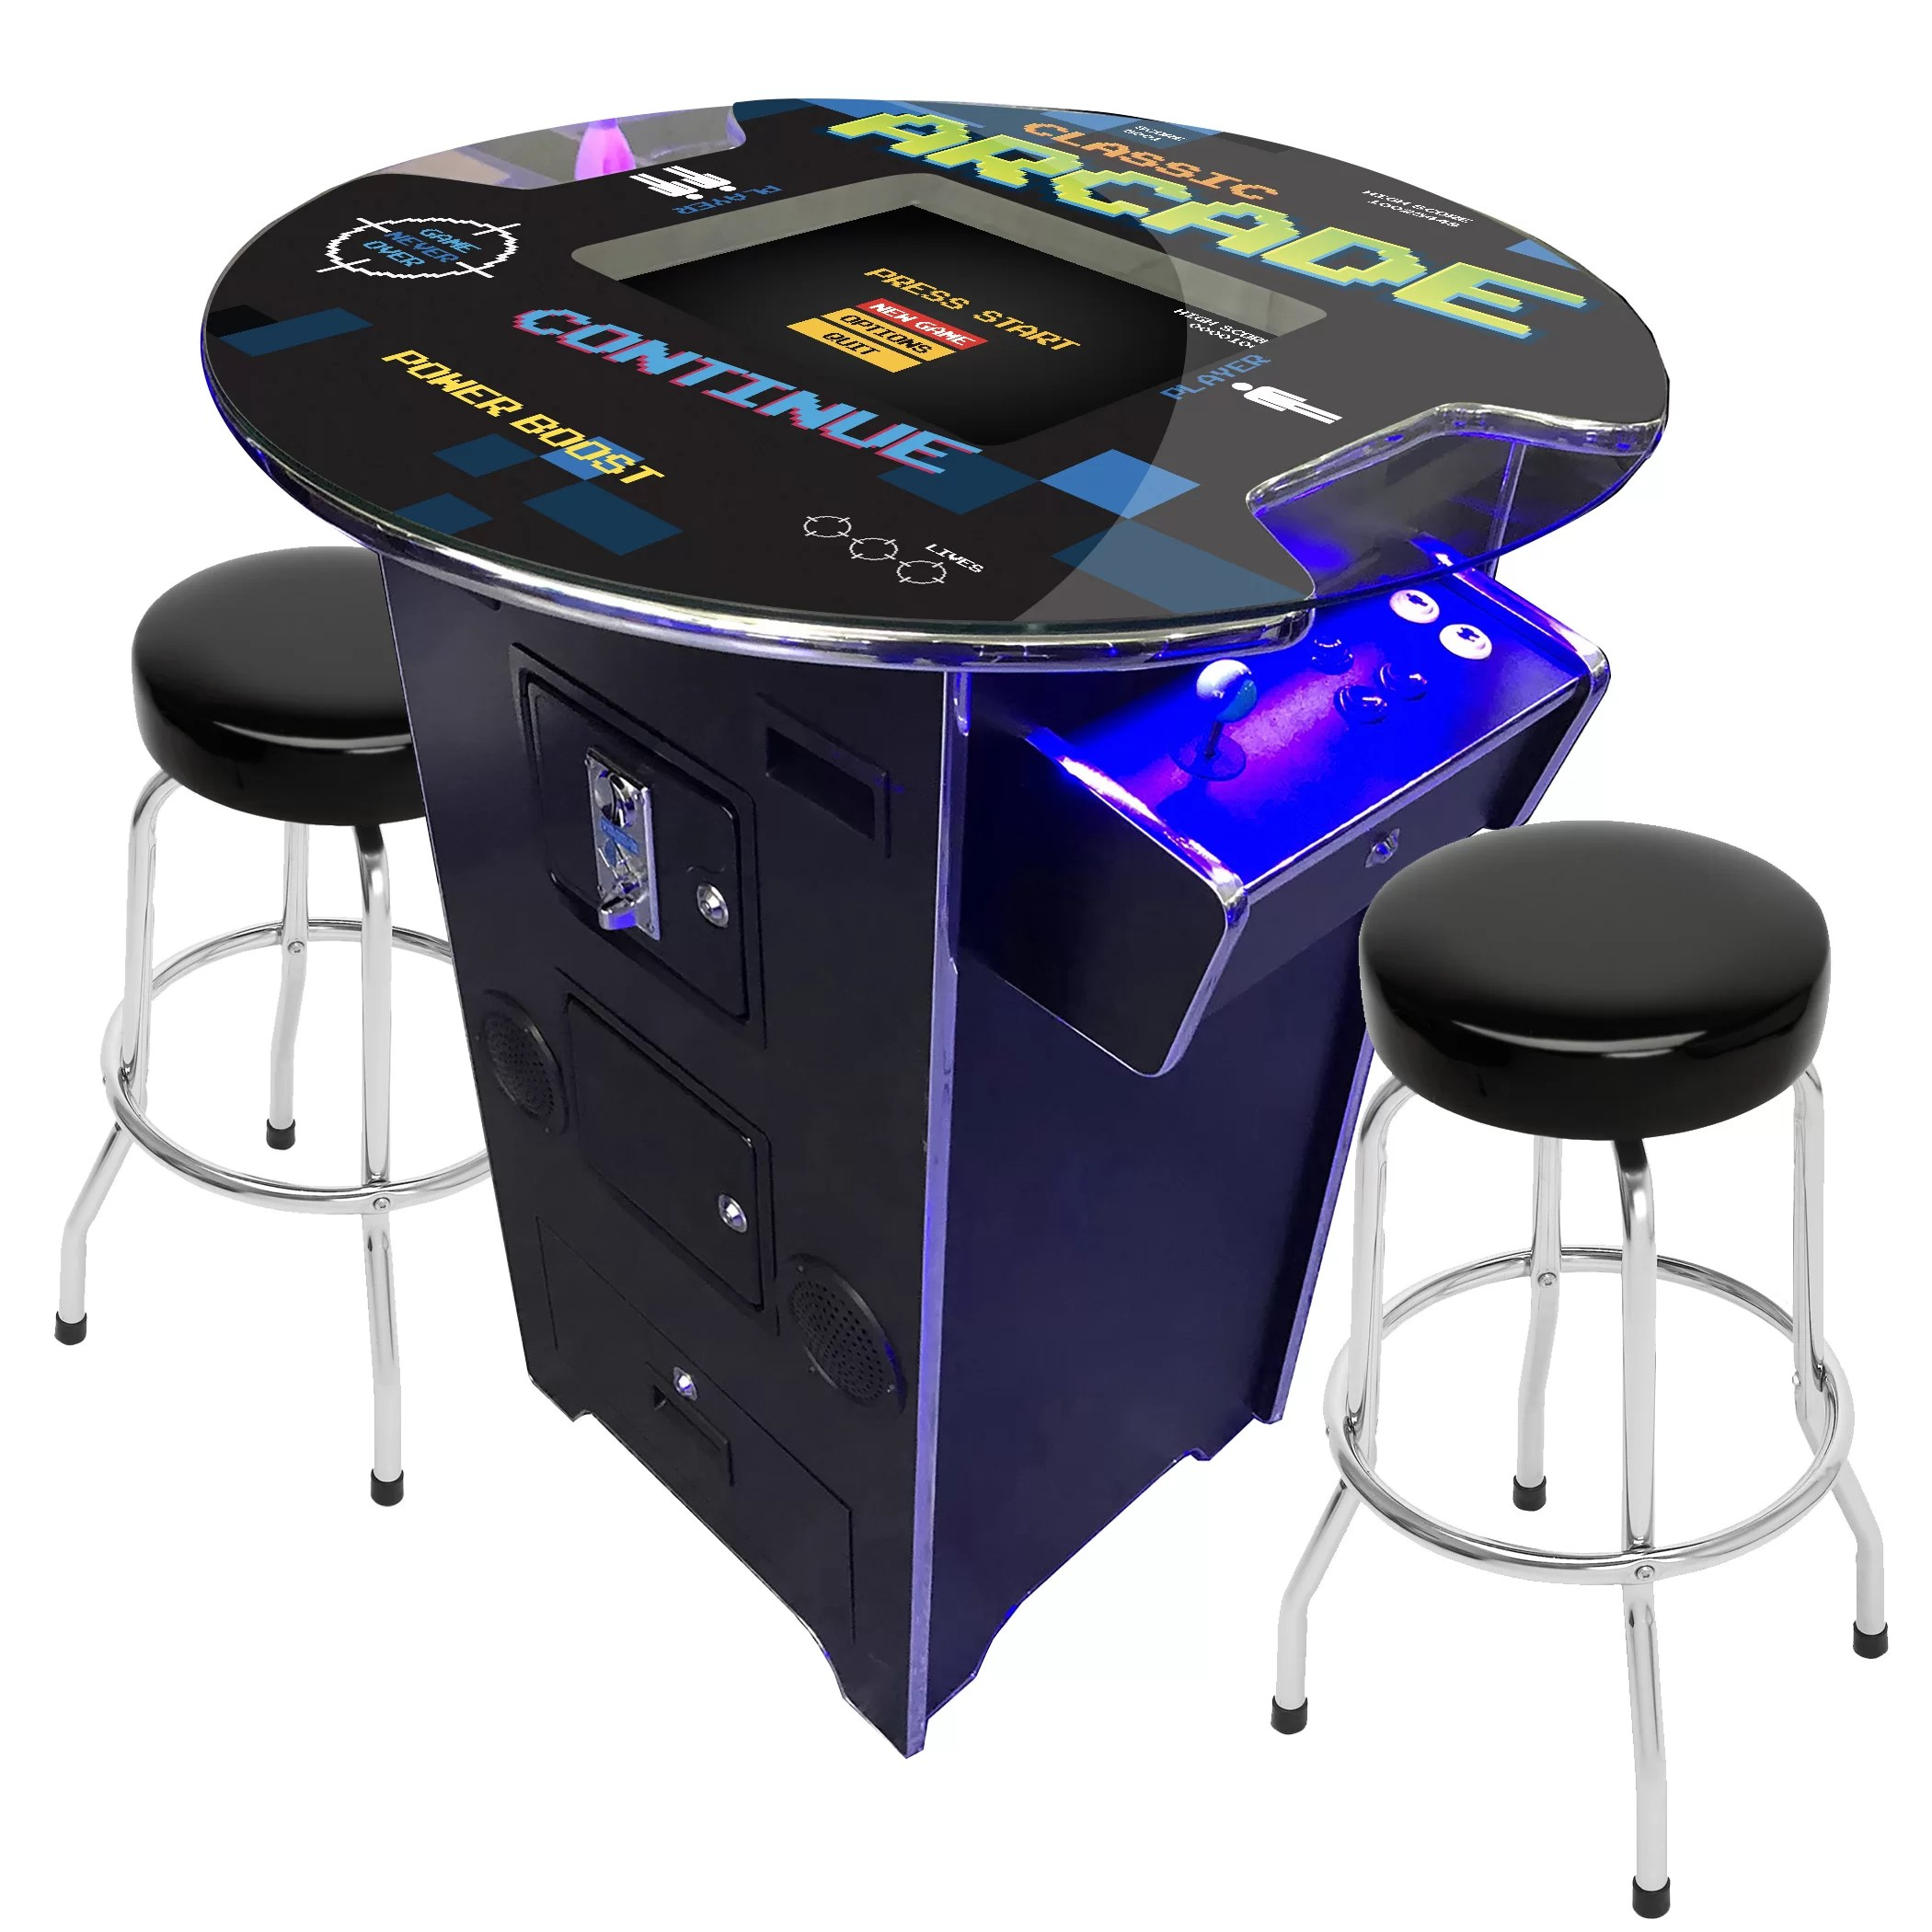 Classic Table Arcade Games 60 Games Creative Arcades Full Size Commercial Grade Pub Arcade Stand Up Machine